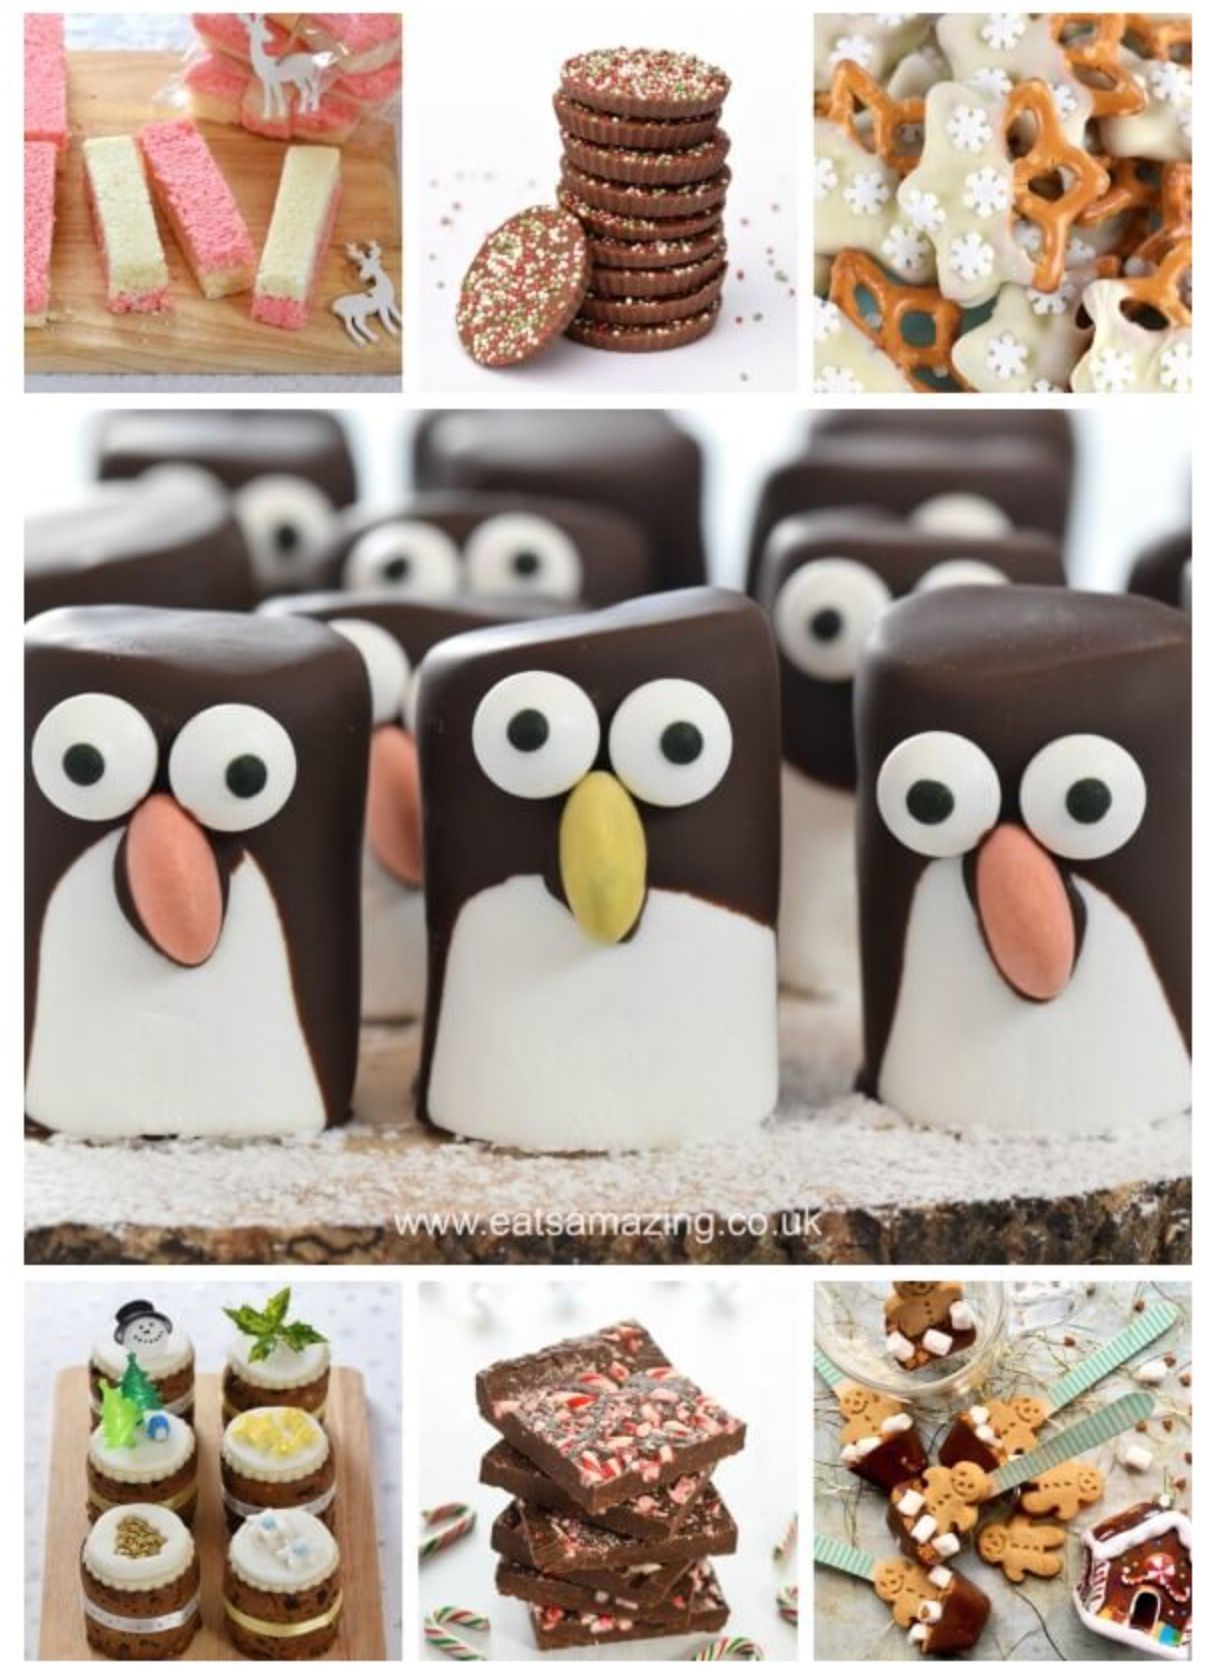 30 easy edible gifts for Christmas by Eats Amazing https